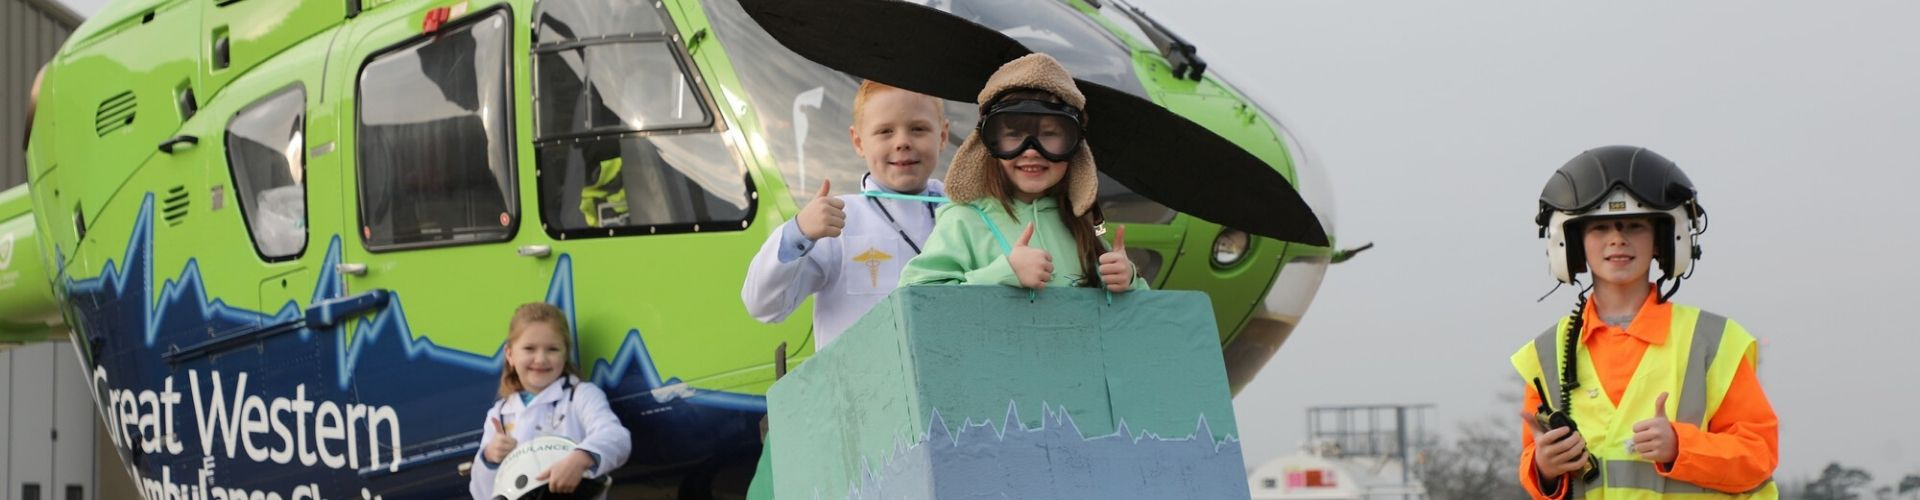 GWAAC Childrens Activities